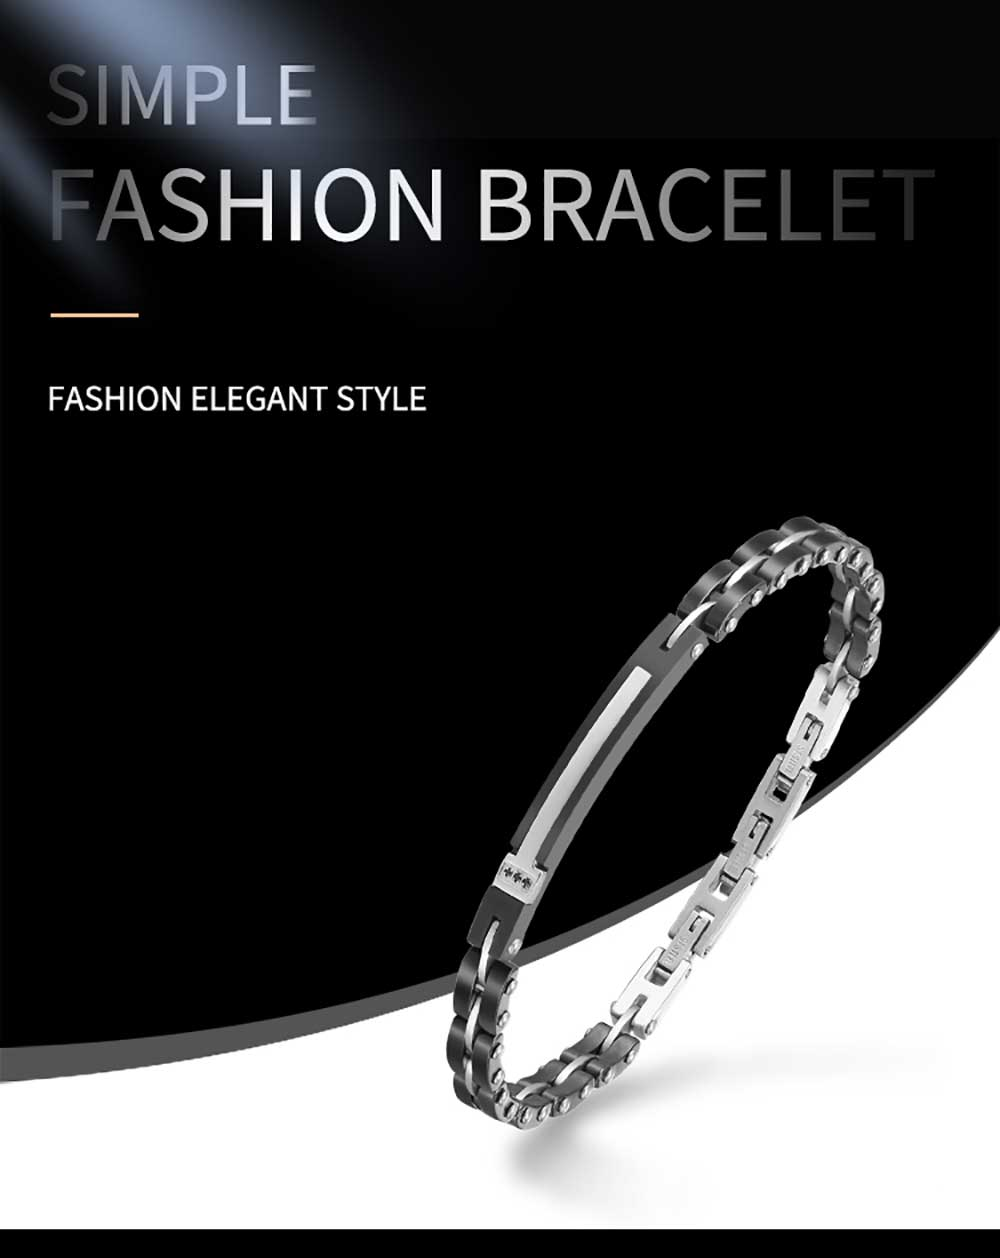 Moocare stainless steel men women bracelet ceramic chain plated black jewelry accessories